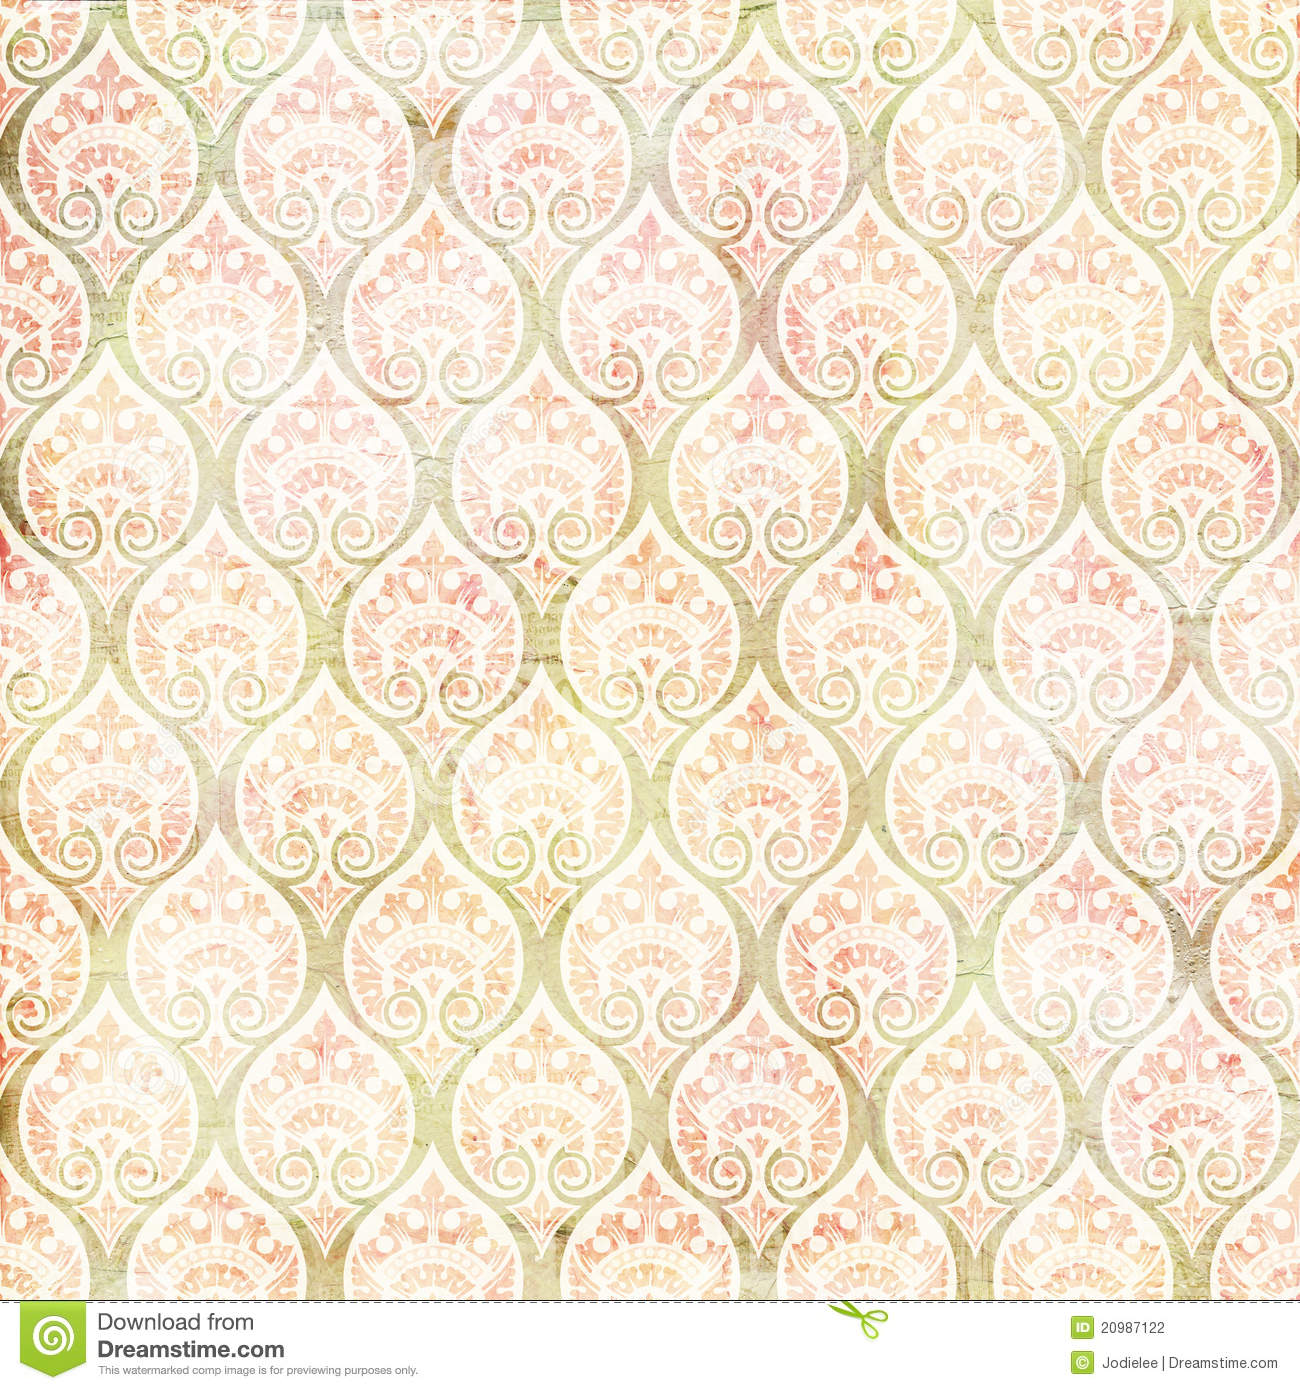 Vintage grungy damask repeating pattern